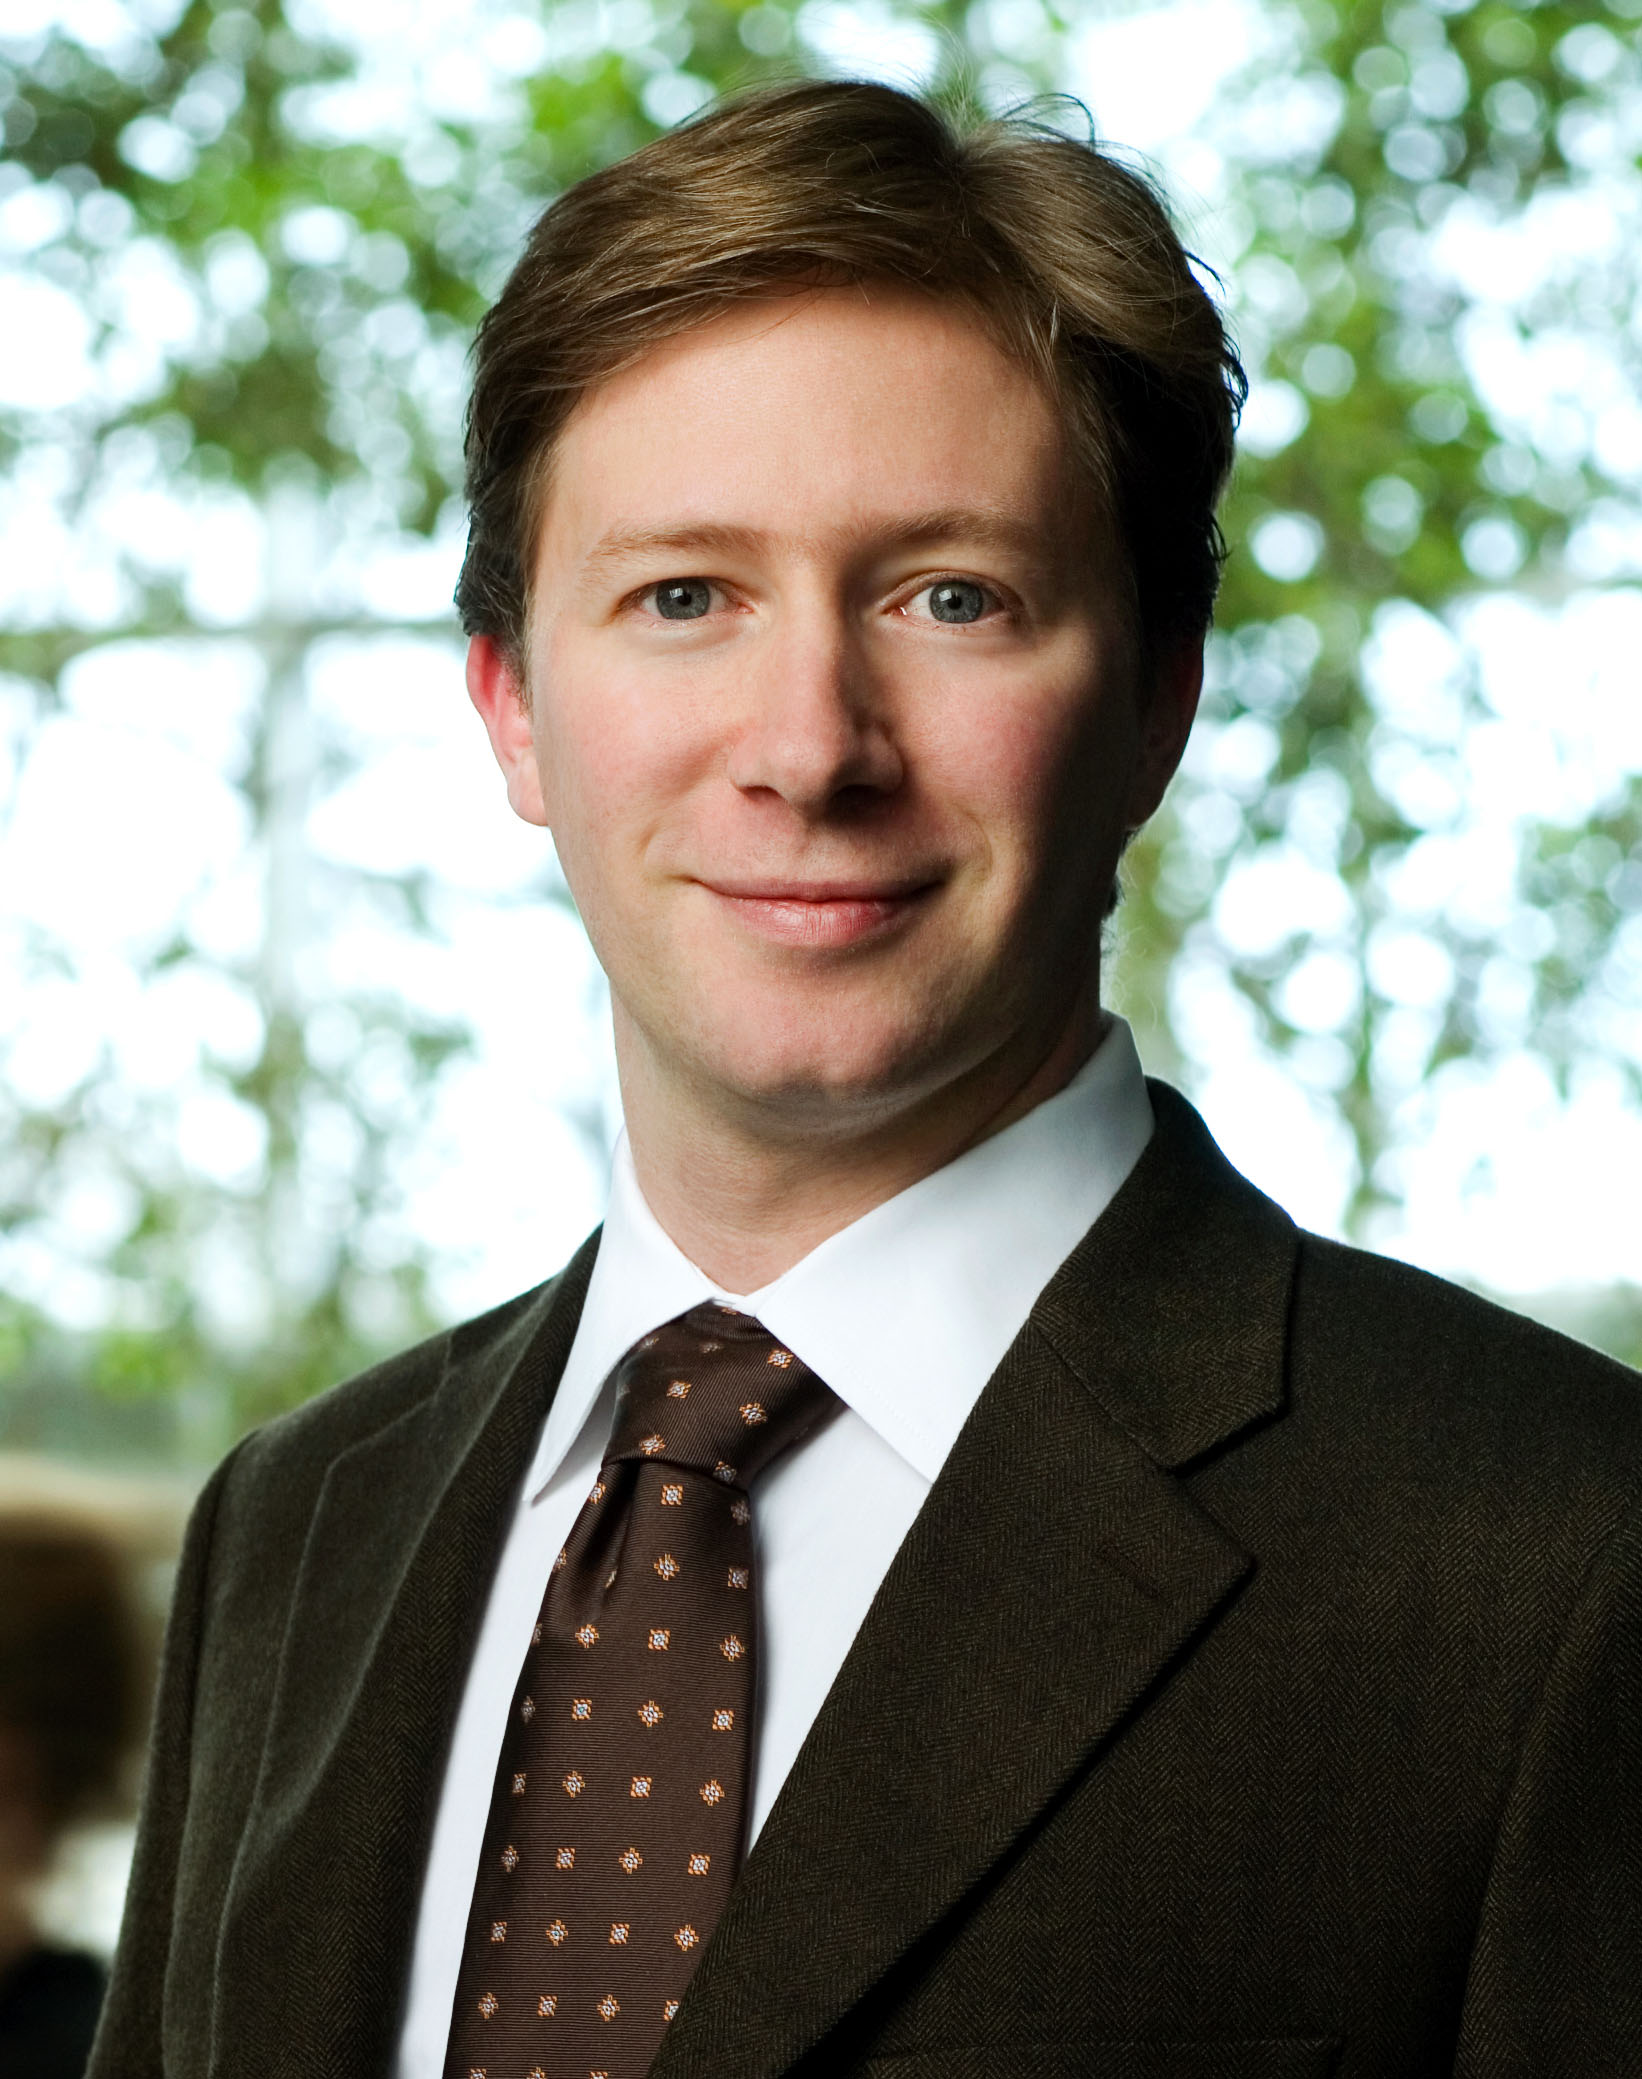 Ari Van Assche - Associate Professor and Chair of International Business Department, HEC Montréal